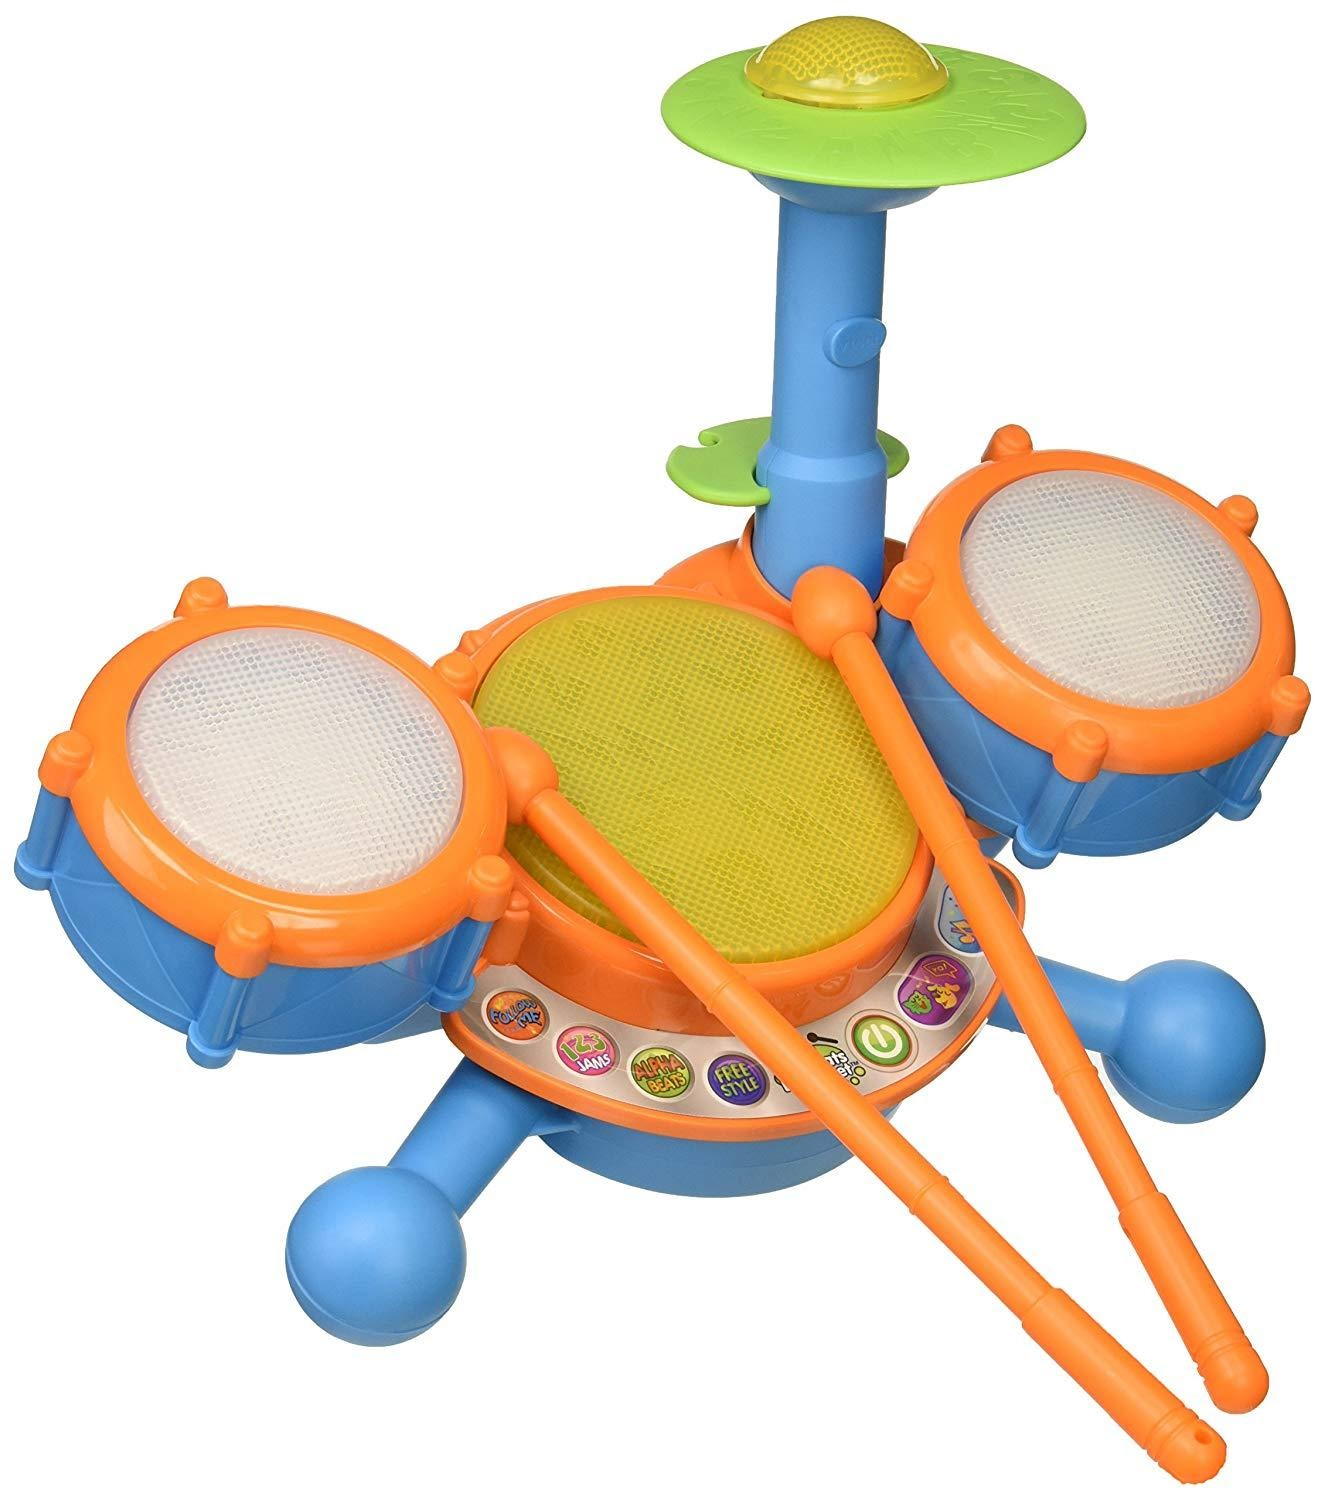 VTech KidiBeats Drums on white background